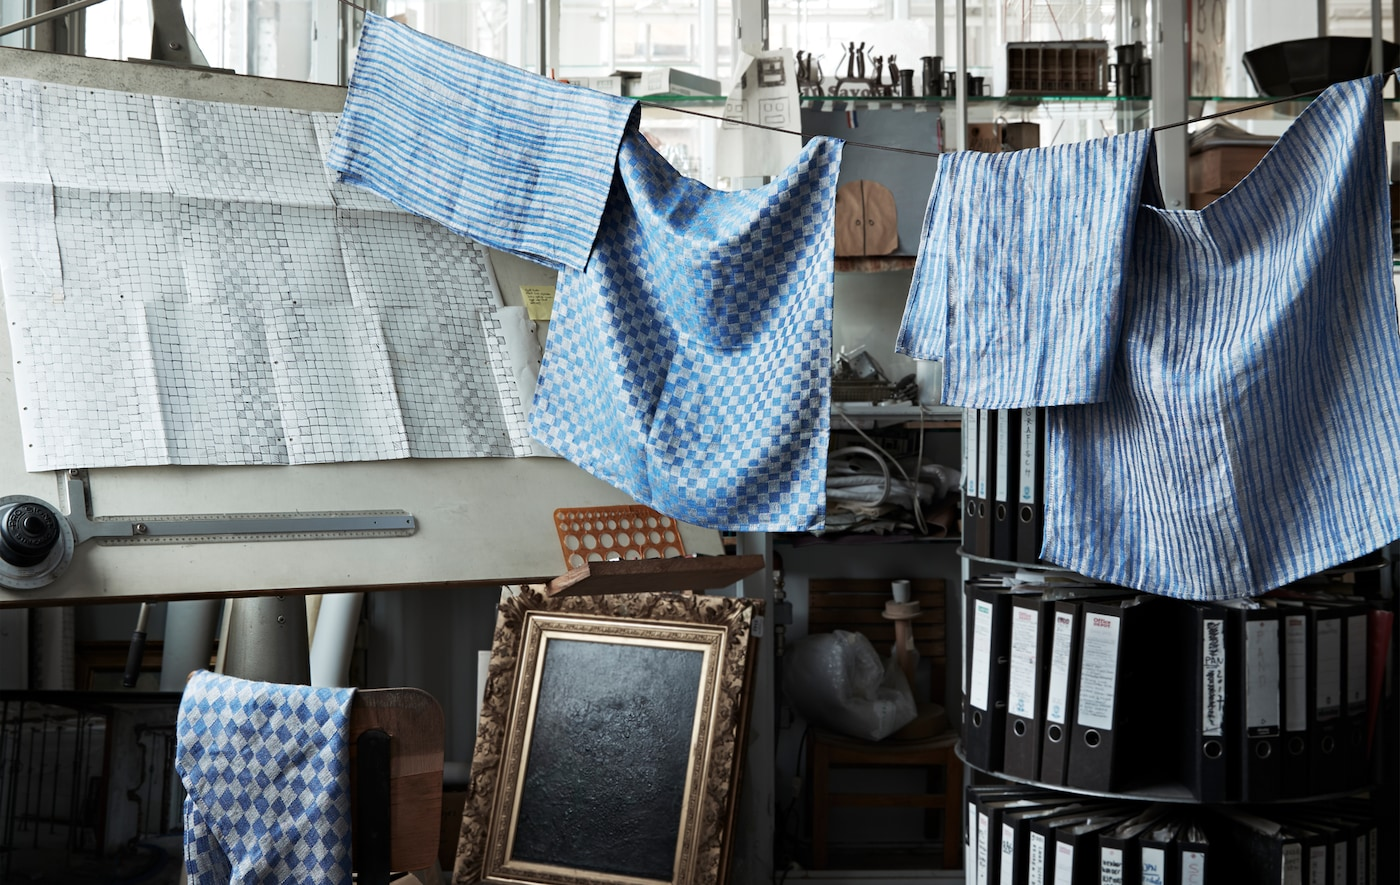 Blue patterned linen hanging on a line in a workshop.